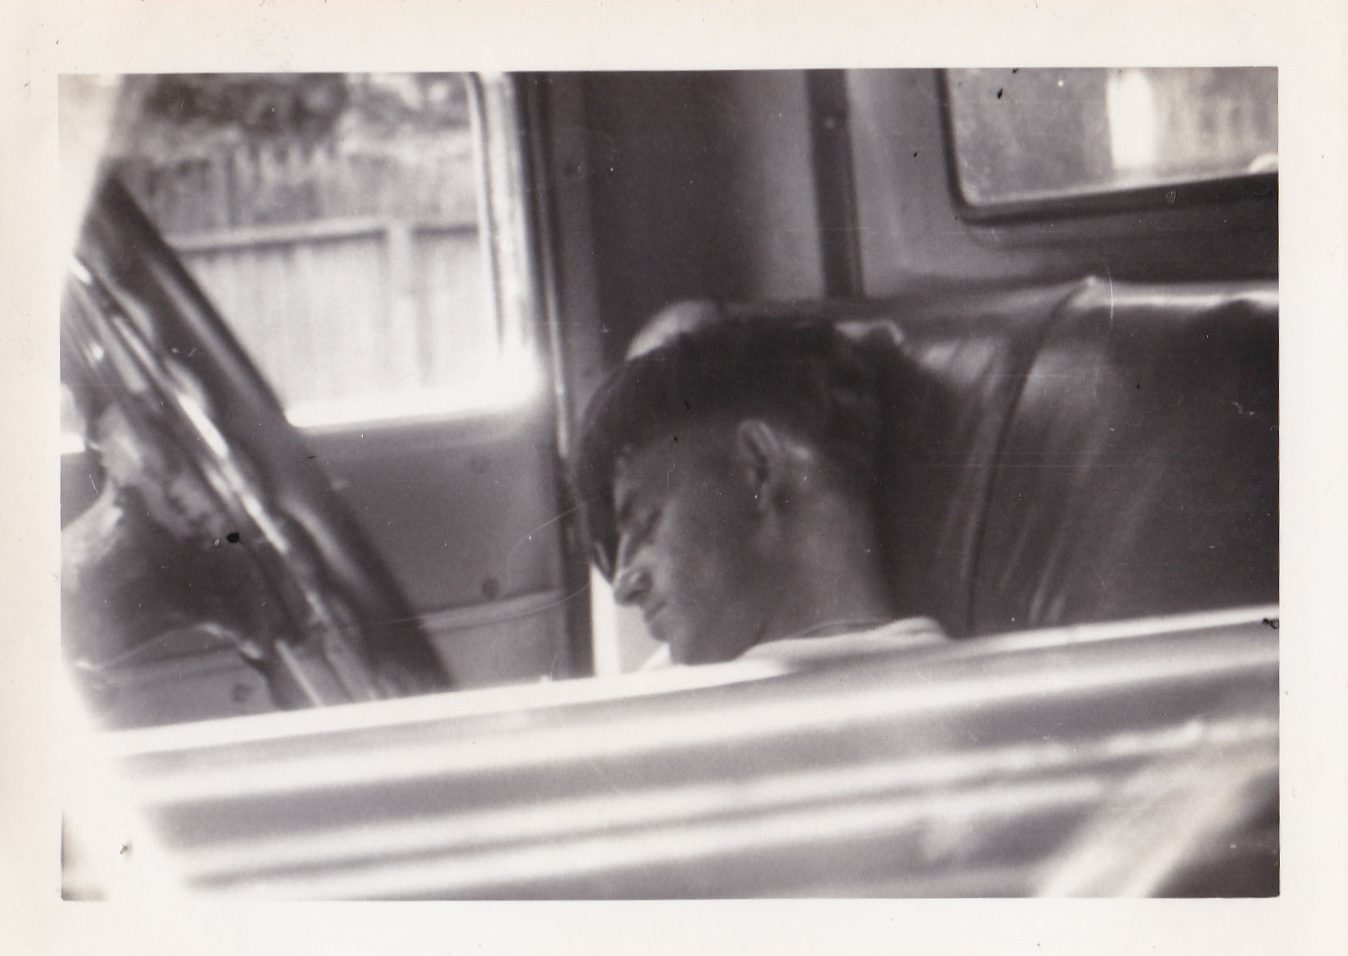 snapshots of people sleeping